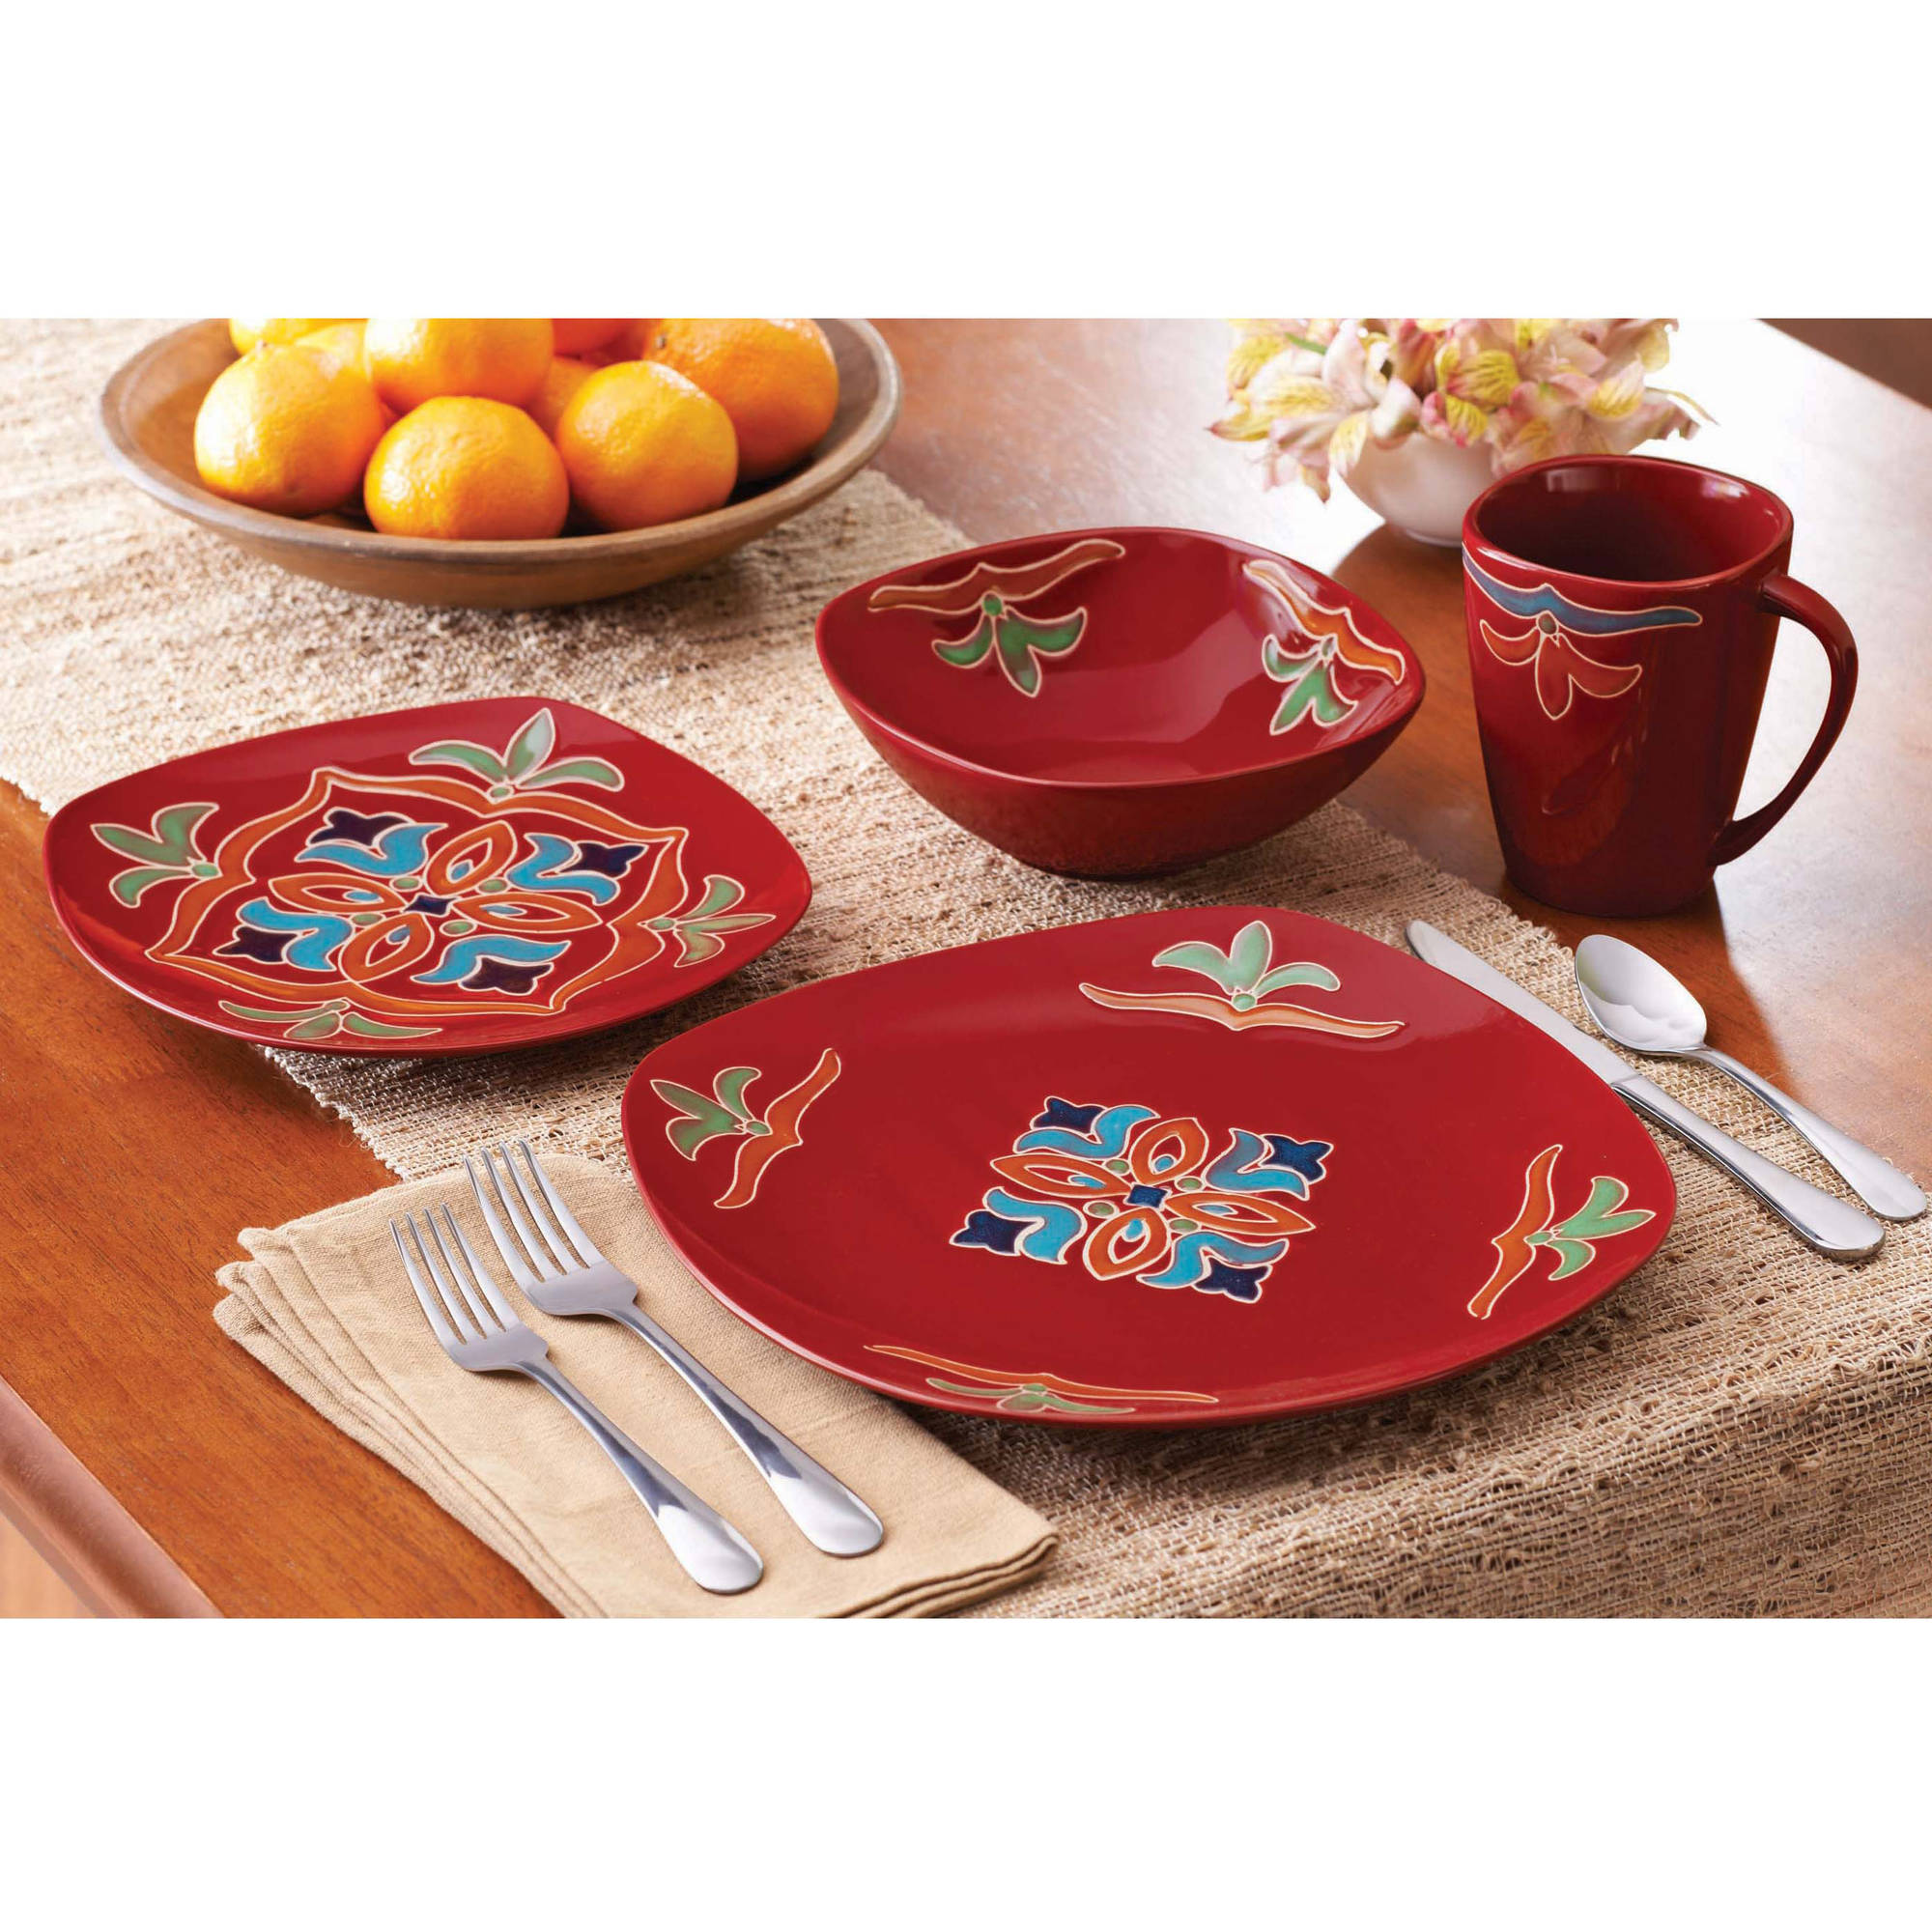 Better Homes and Gardens Medallion 16-Piece Square Dinnerware Set Red - Walmart.com  sc 1 st  Walmart : unique tableware sets - pezcame.com